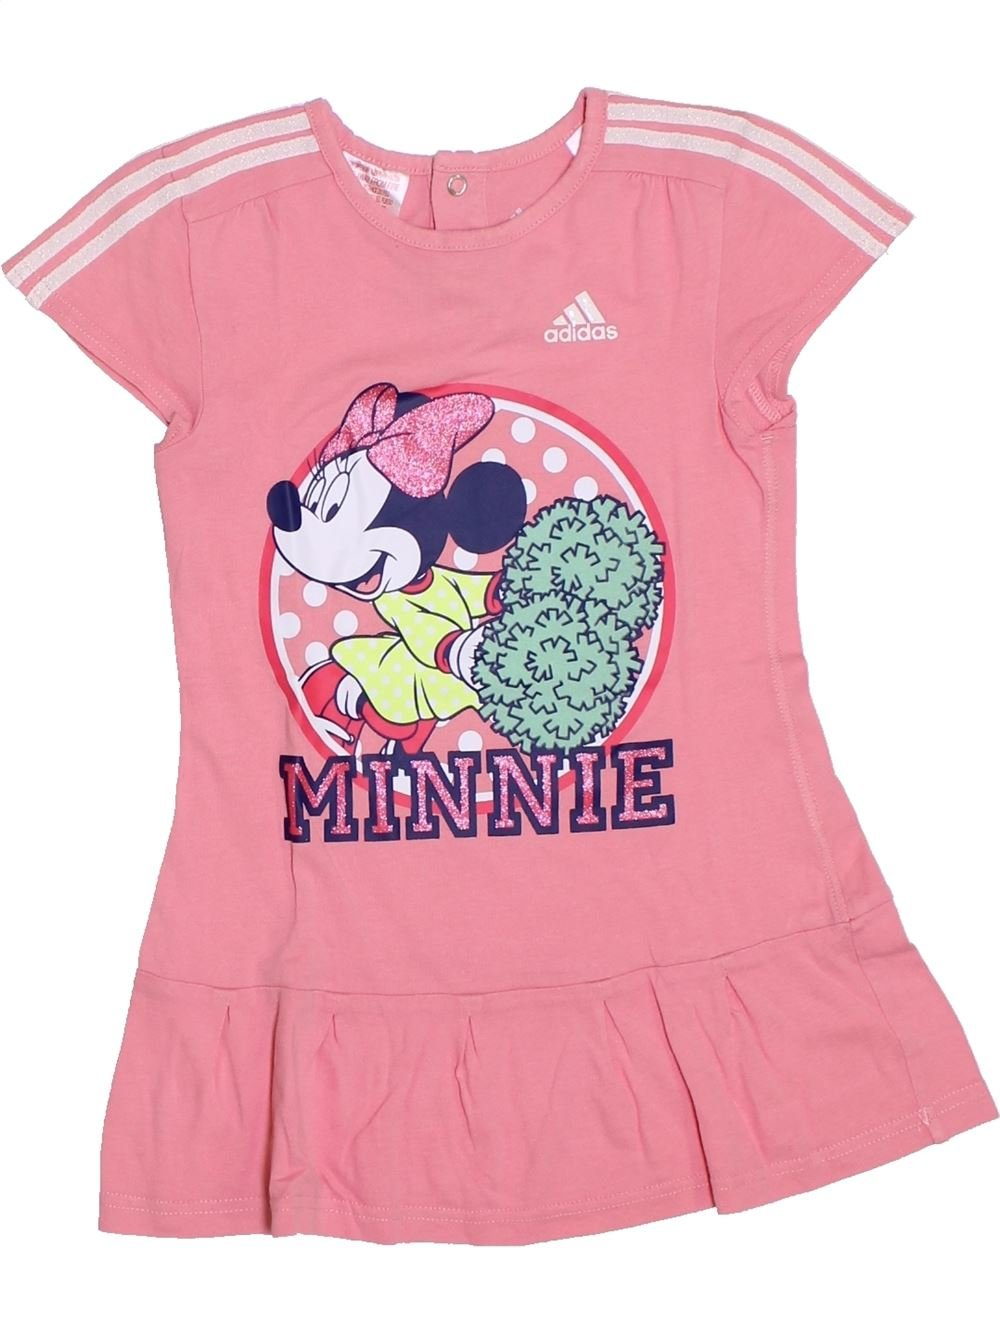 Robe Fille ADIDAS 4 ans pas cher, 20.99 € #1278759